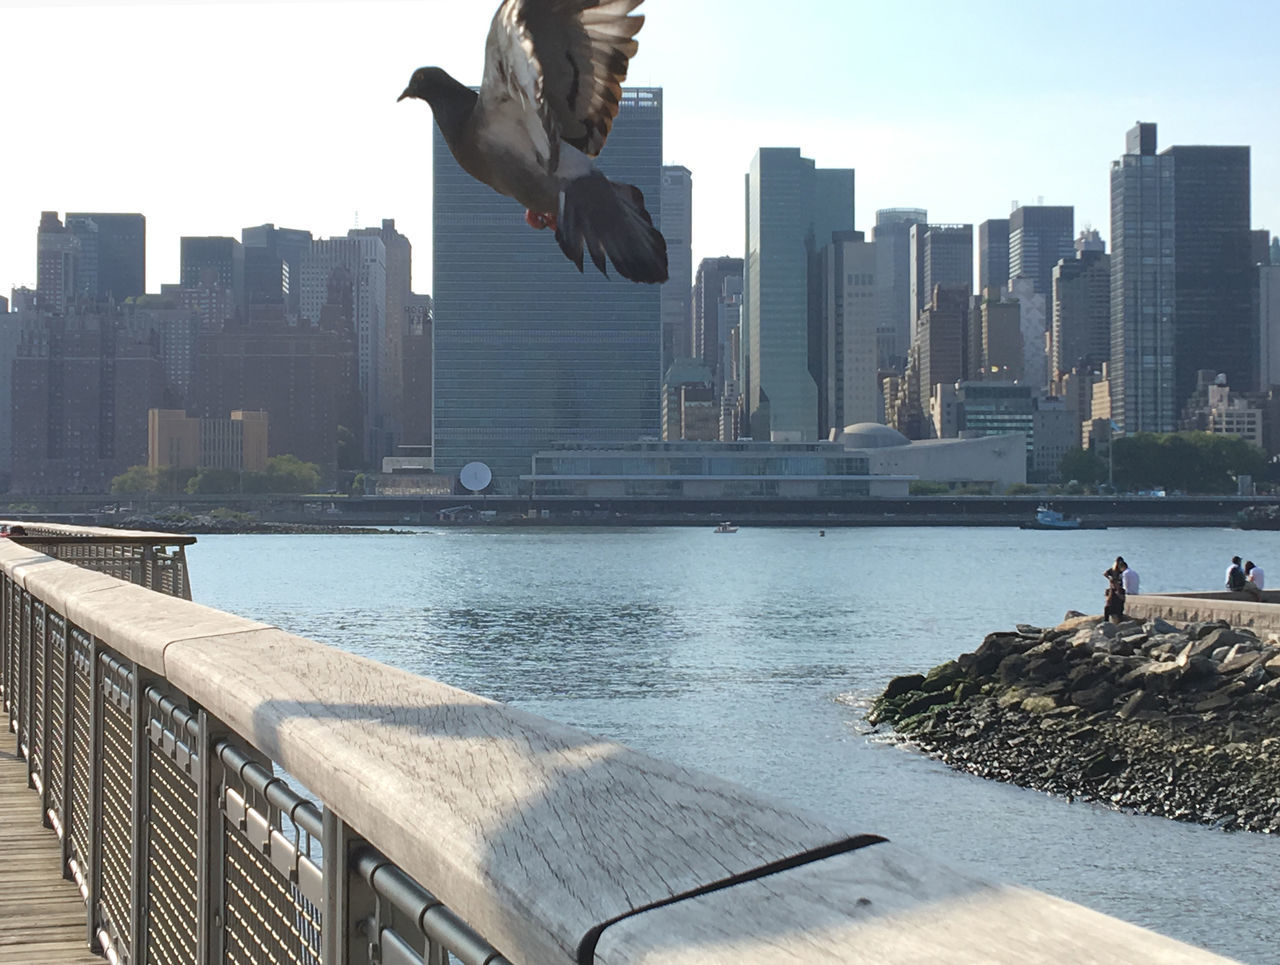 architecture, building exterior, built structure, water, city, skyscraper, day, outdoors, mid-air, real people, urban skyline, men, sea, sky, clear sky, cityscape, nature, one person, full length, spread wings, bird, people